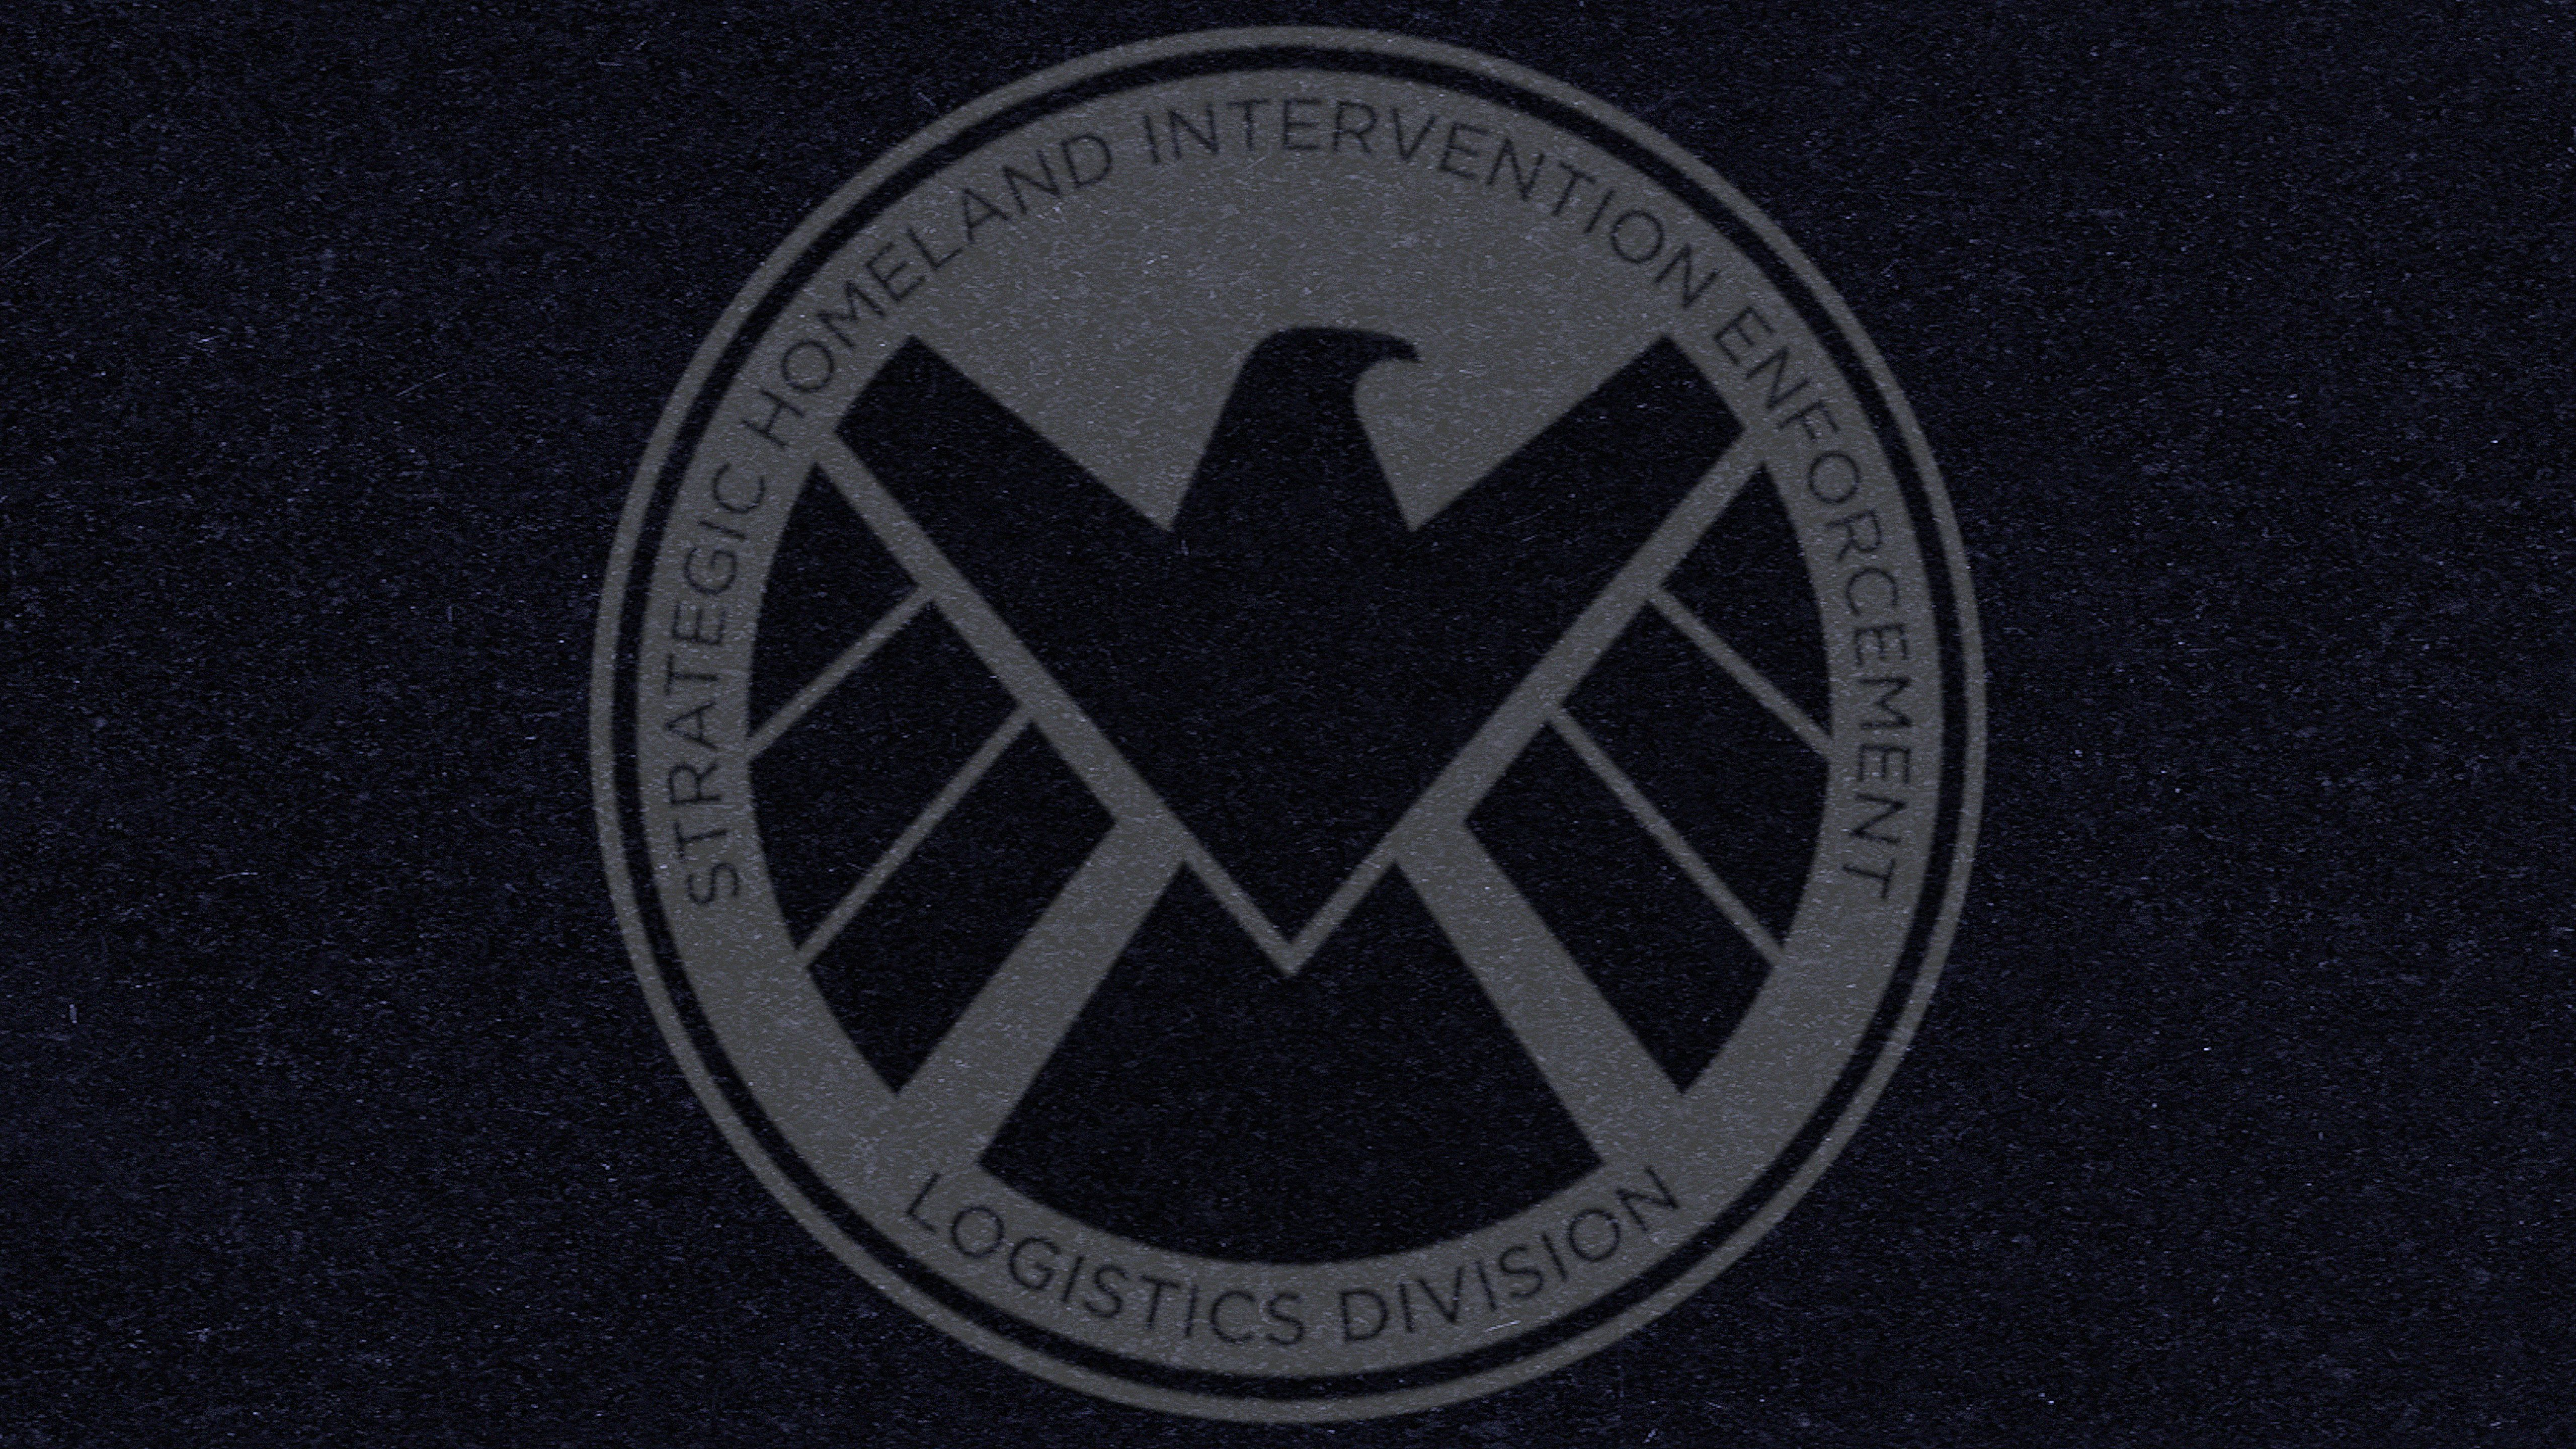 Agents of Shield wallpaper 9 5120x2880